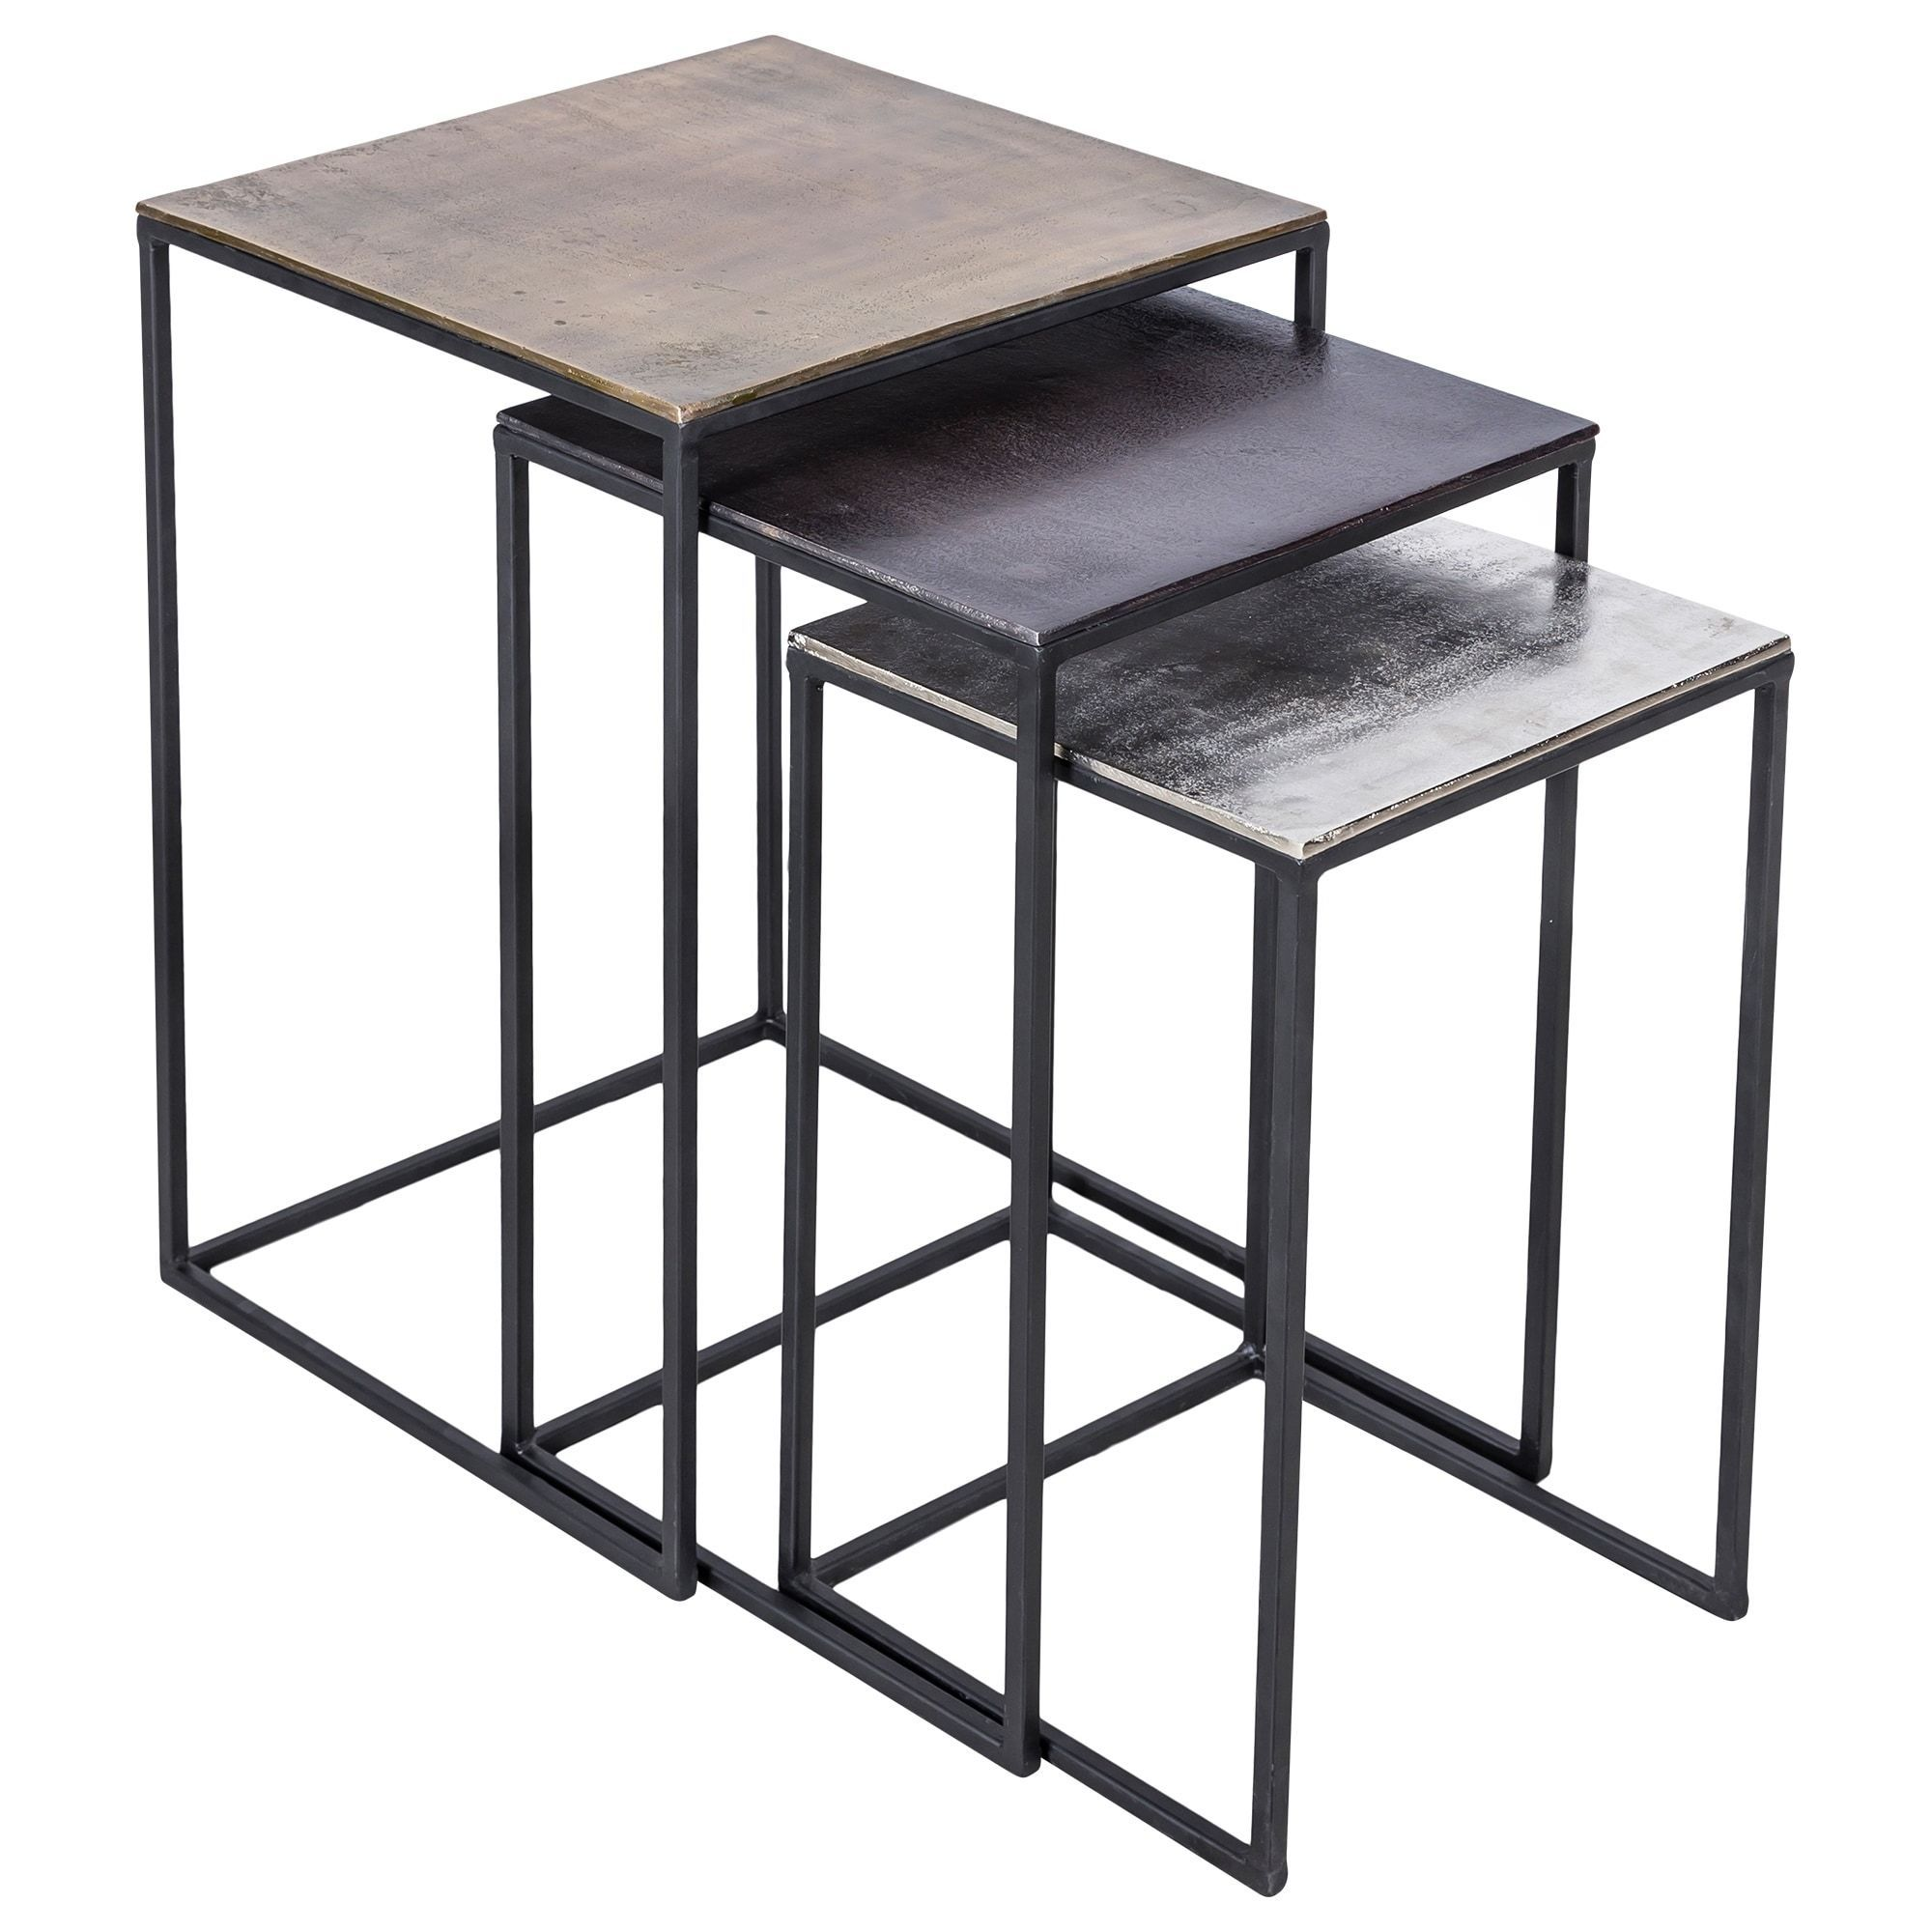 Set Of 2 Square Design Nesting Coffee Tables Made Of Black: Renwil Lionel Antique-brass-finished Aluminum And Matte